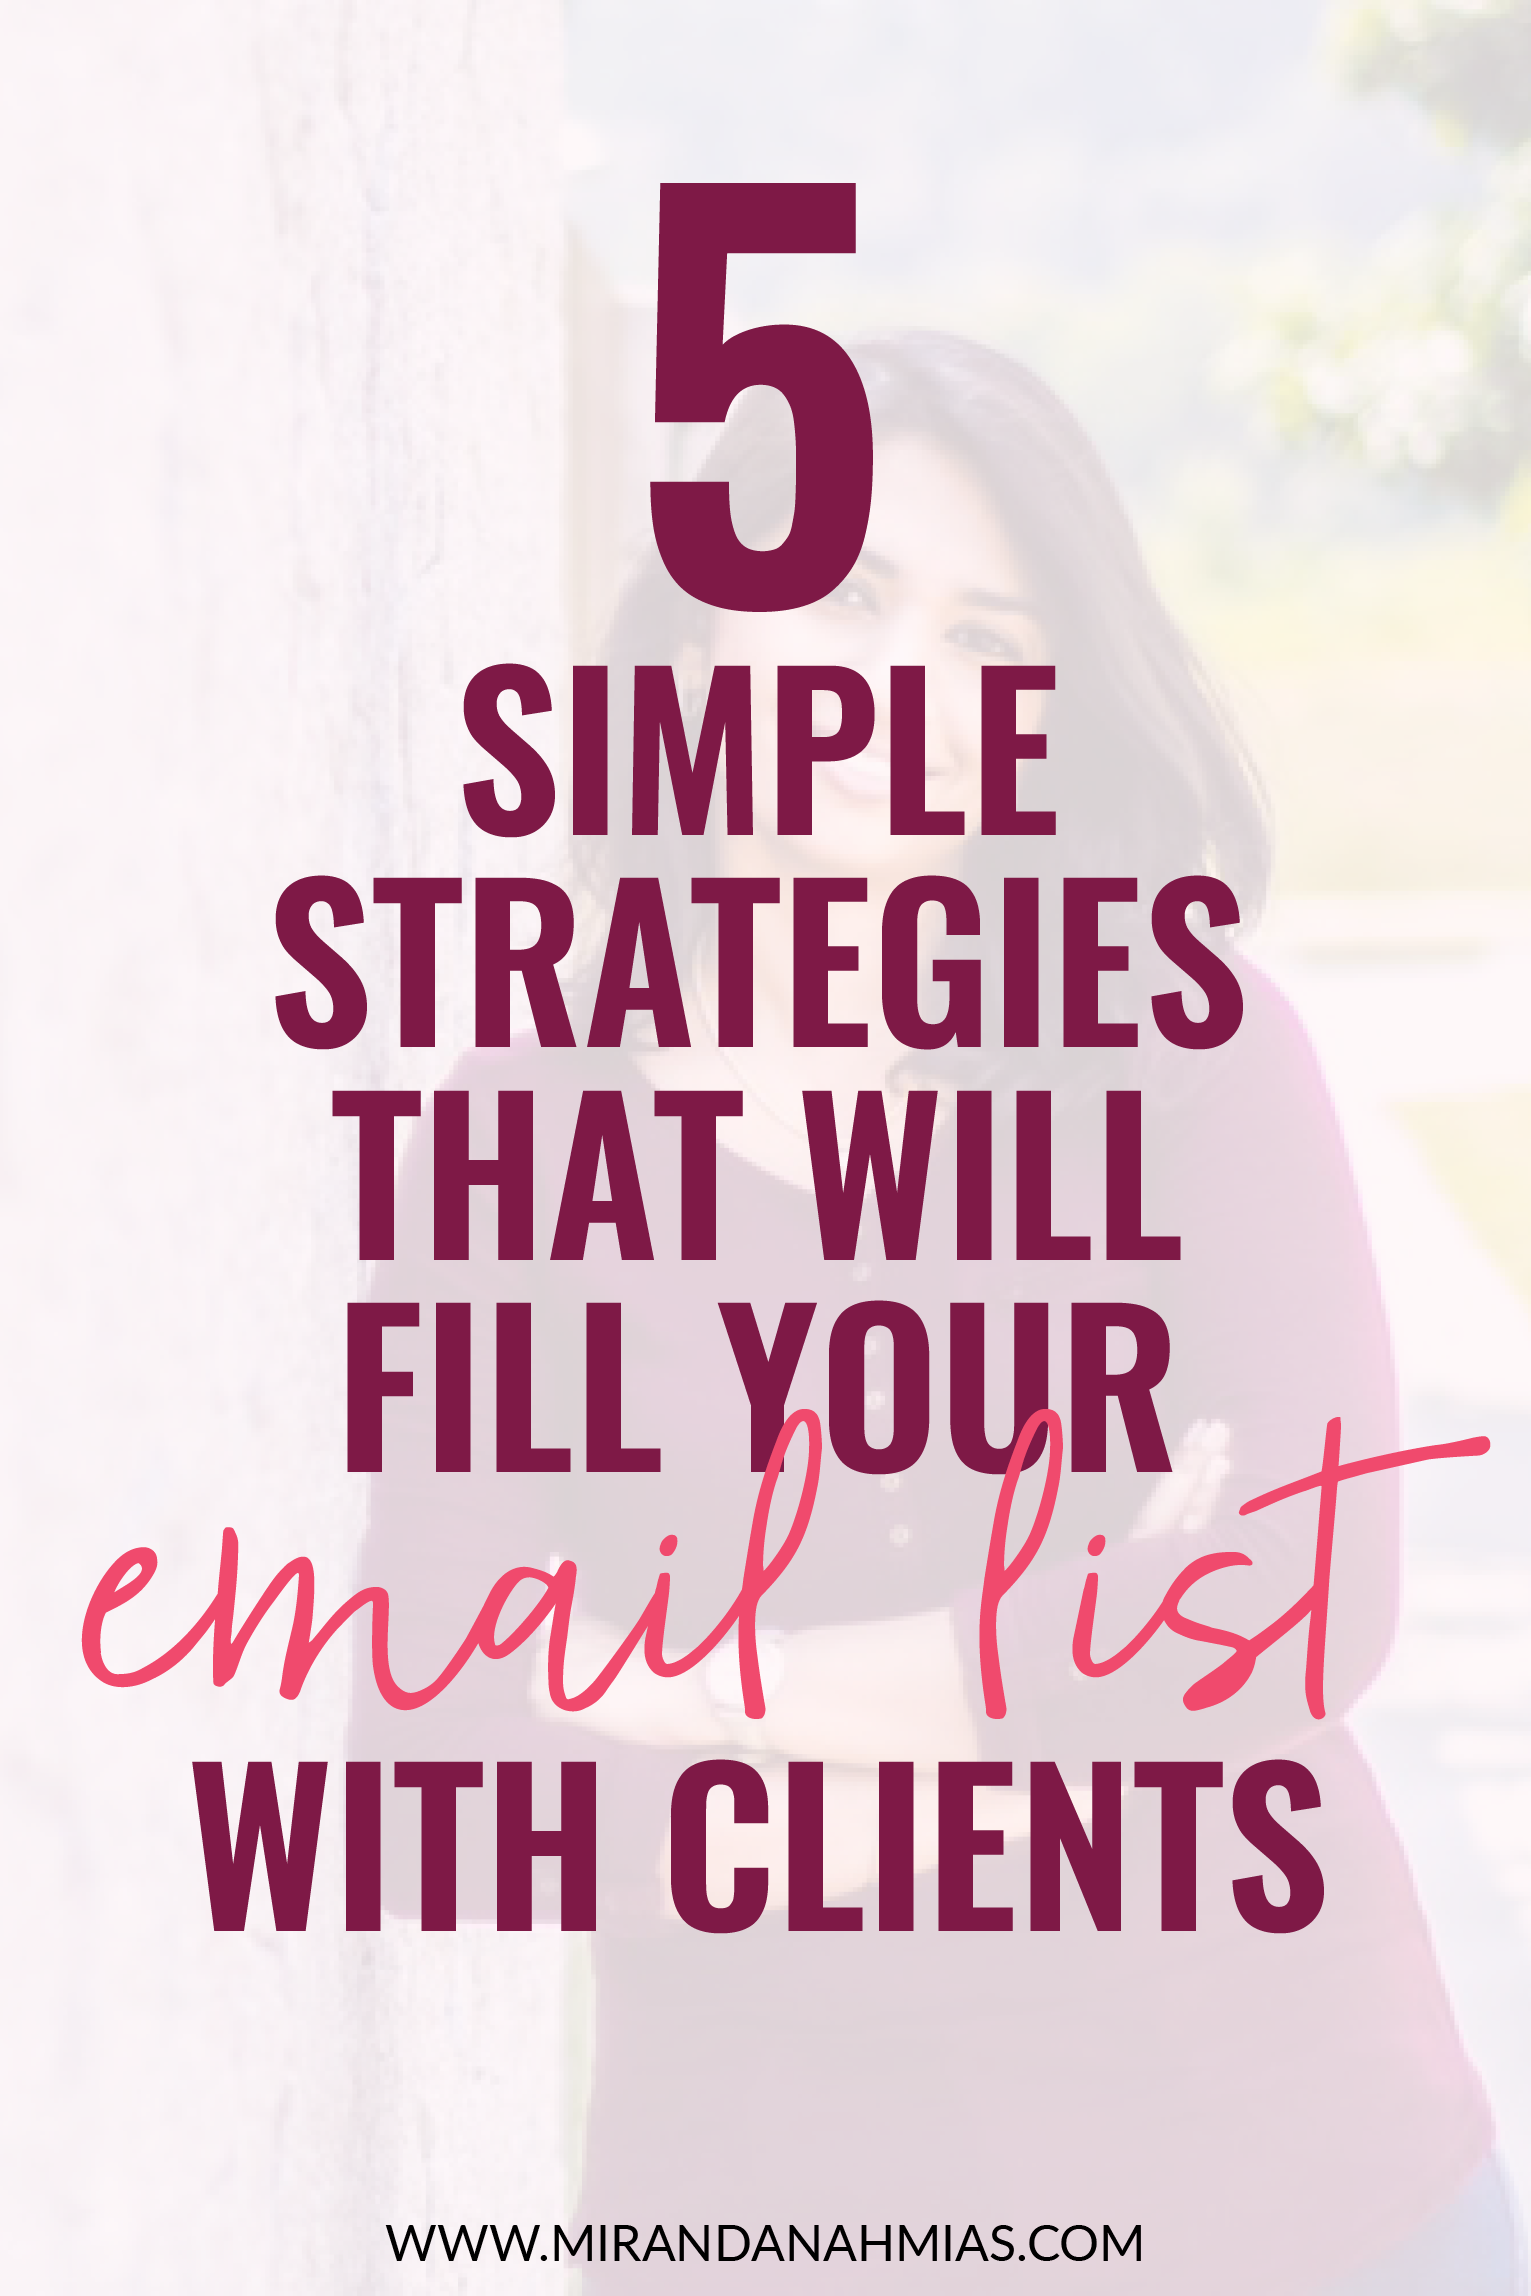 5 Simple Strategies That Will Fill Your Email List with Clients | Miranda Nahmias & Co. — Strategic Marketing for Female Online Service Providers